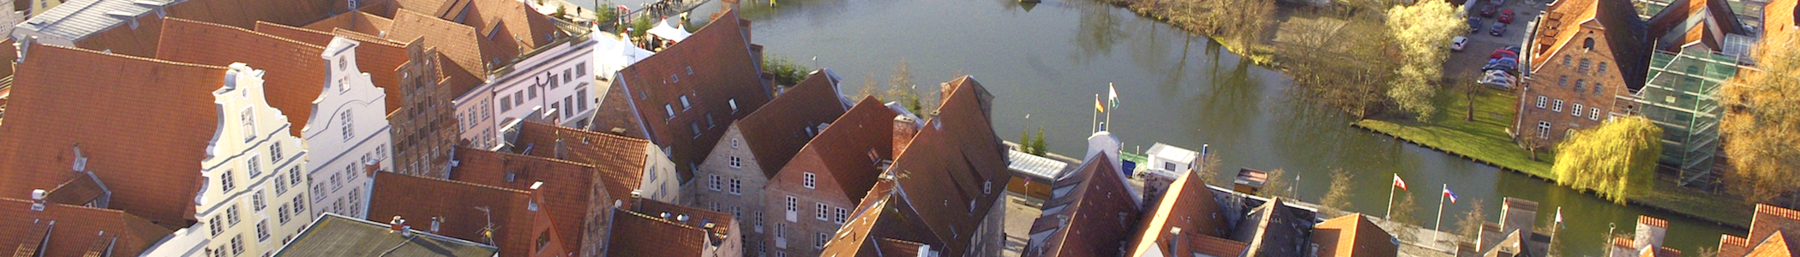 Lubeck Wikivoyage banner.png